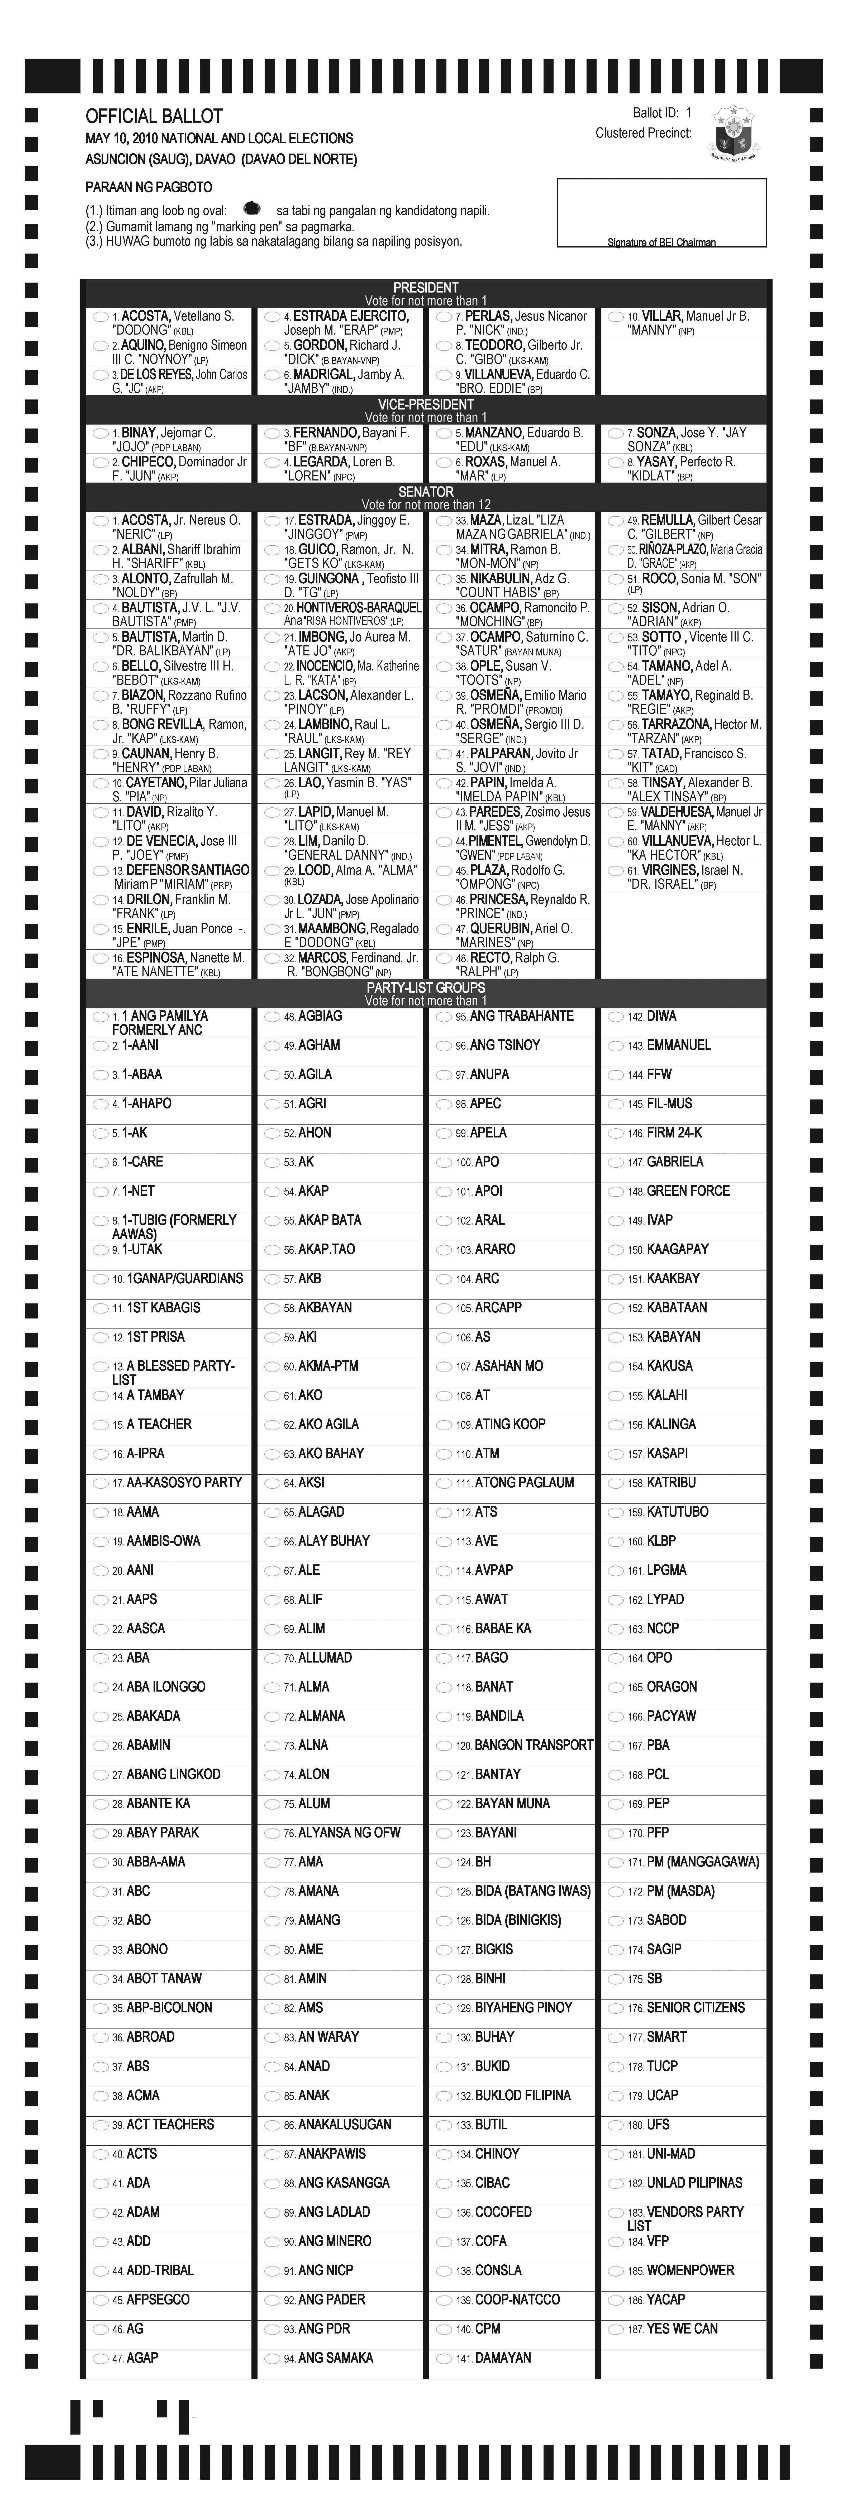 Front side of the official ballot for the May 10 elections ...